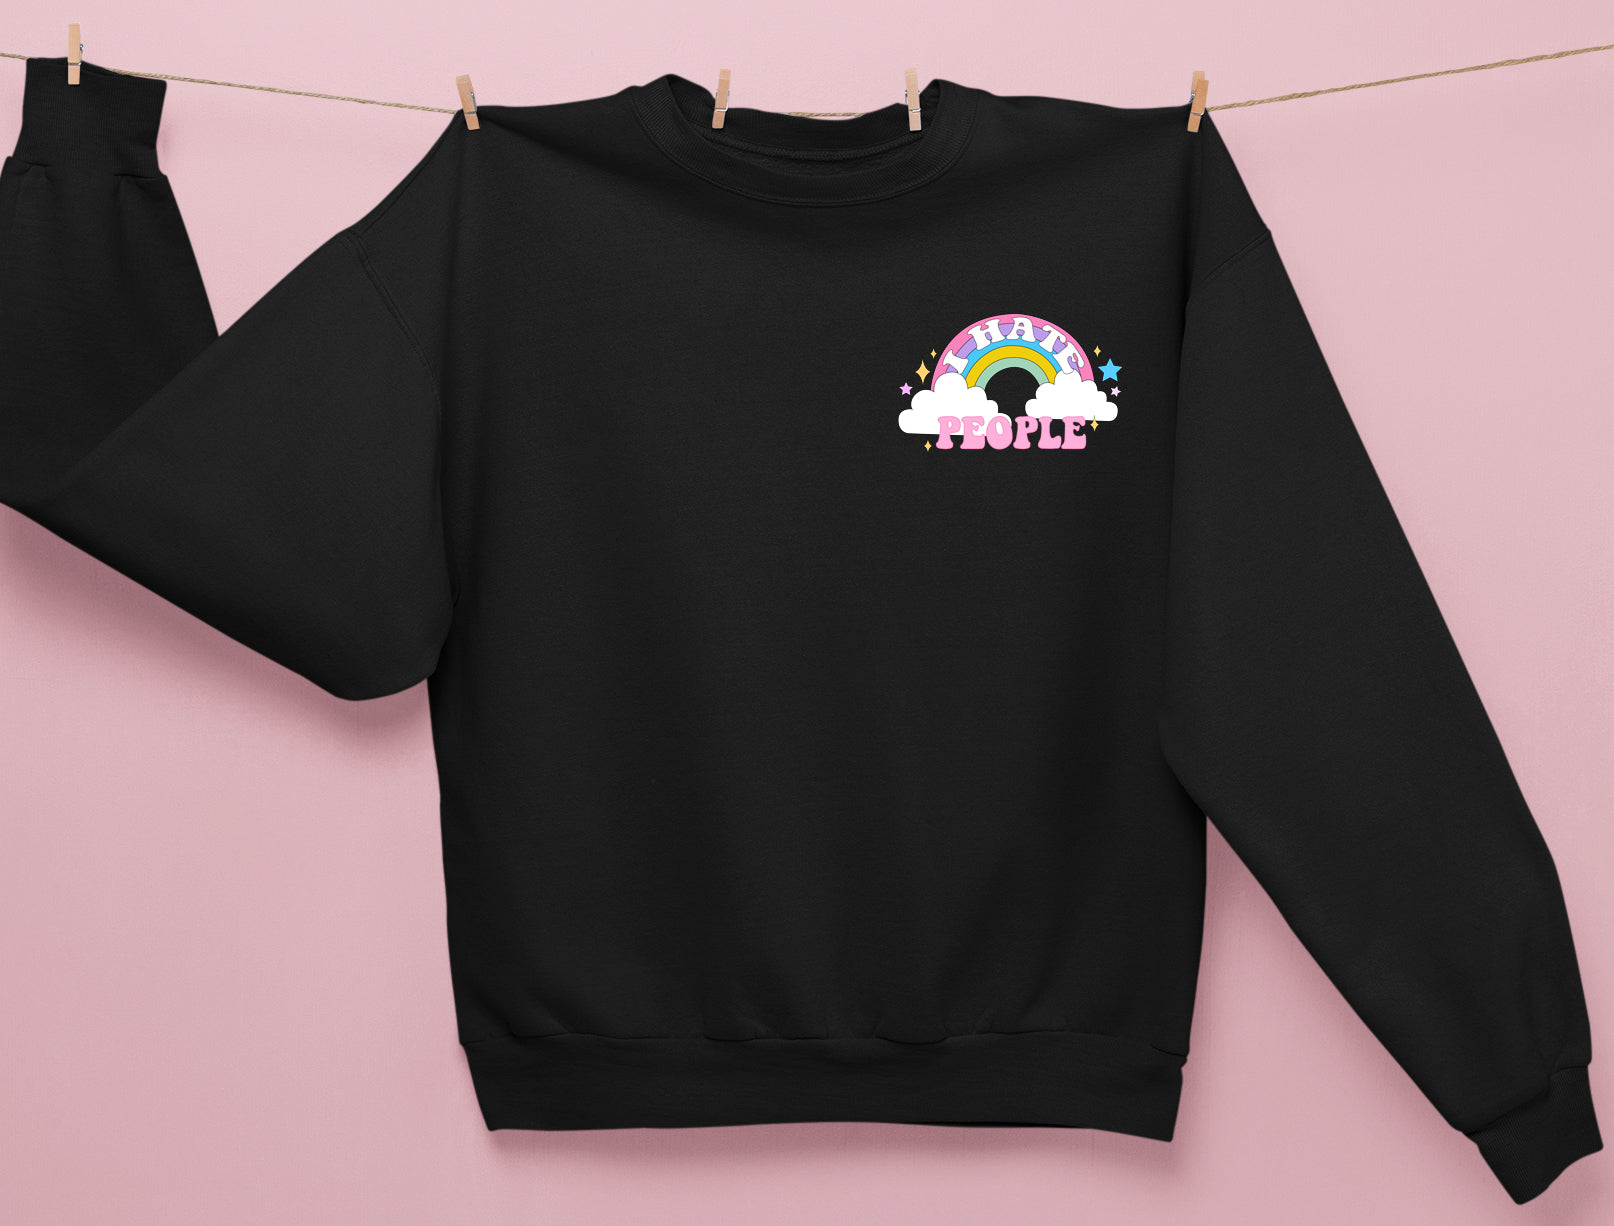 Black sweatshirt with a colorful rainbow saying I hate people - HighCiti